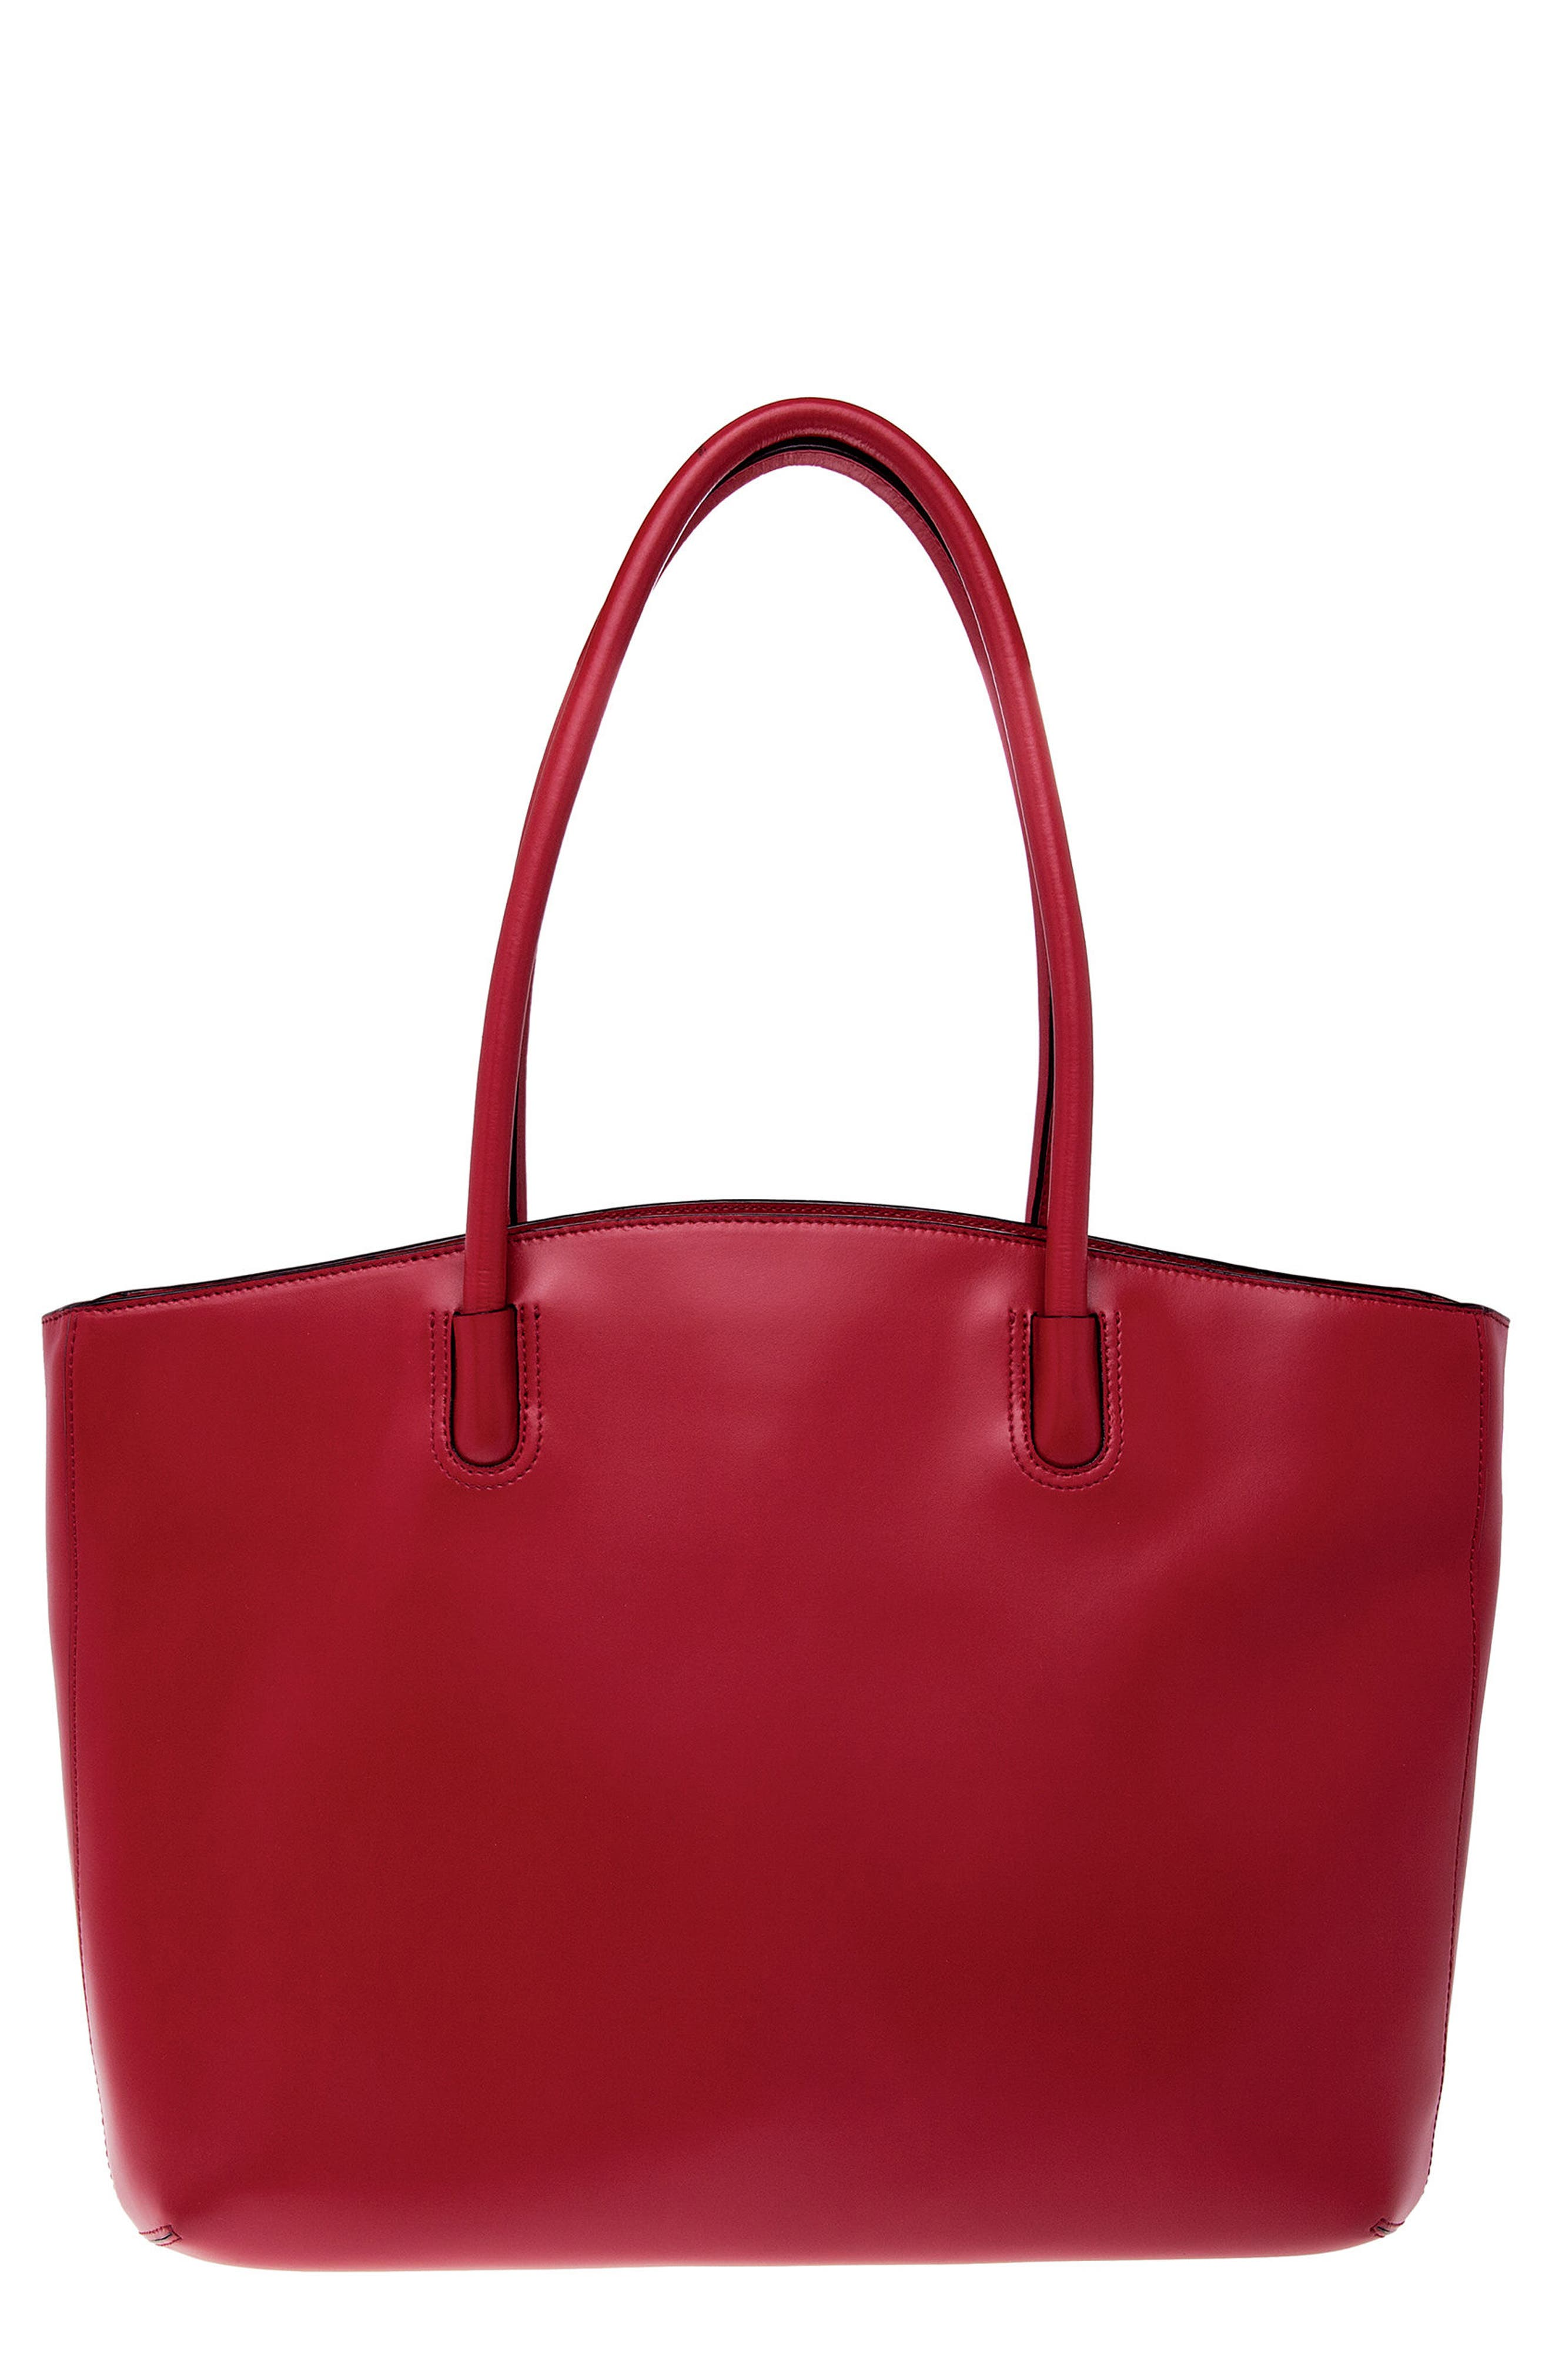 Audrey Under Lock & Key - Milano RFID Leather Tote,                             Main thumbnail 1, color,                             Red